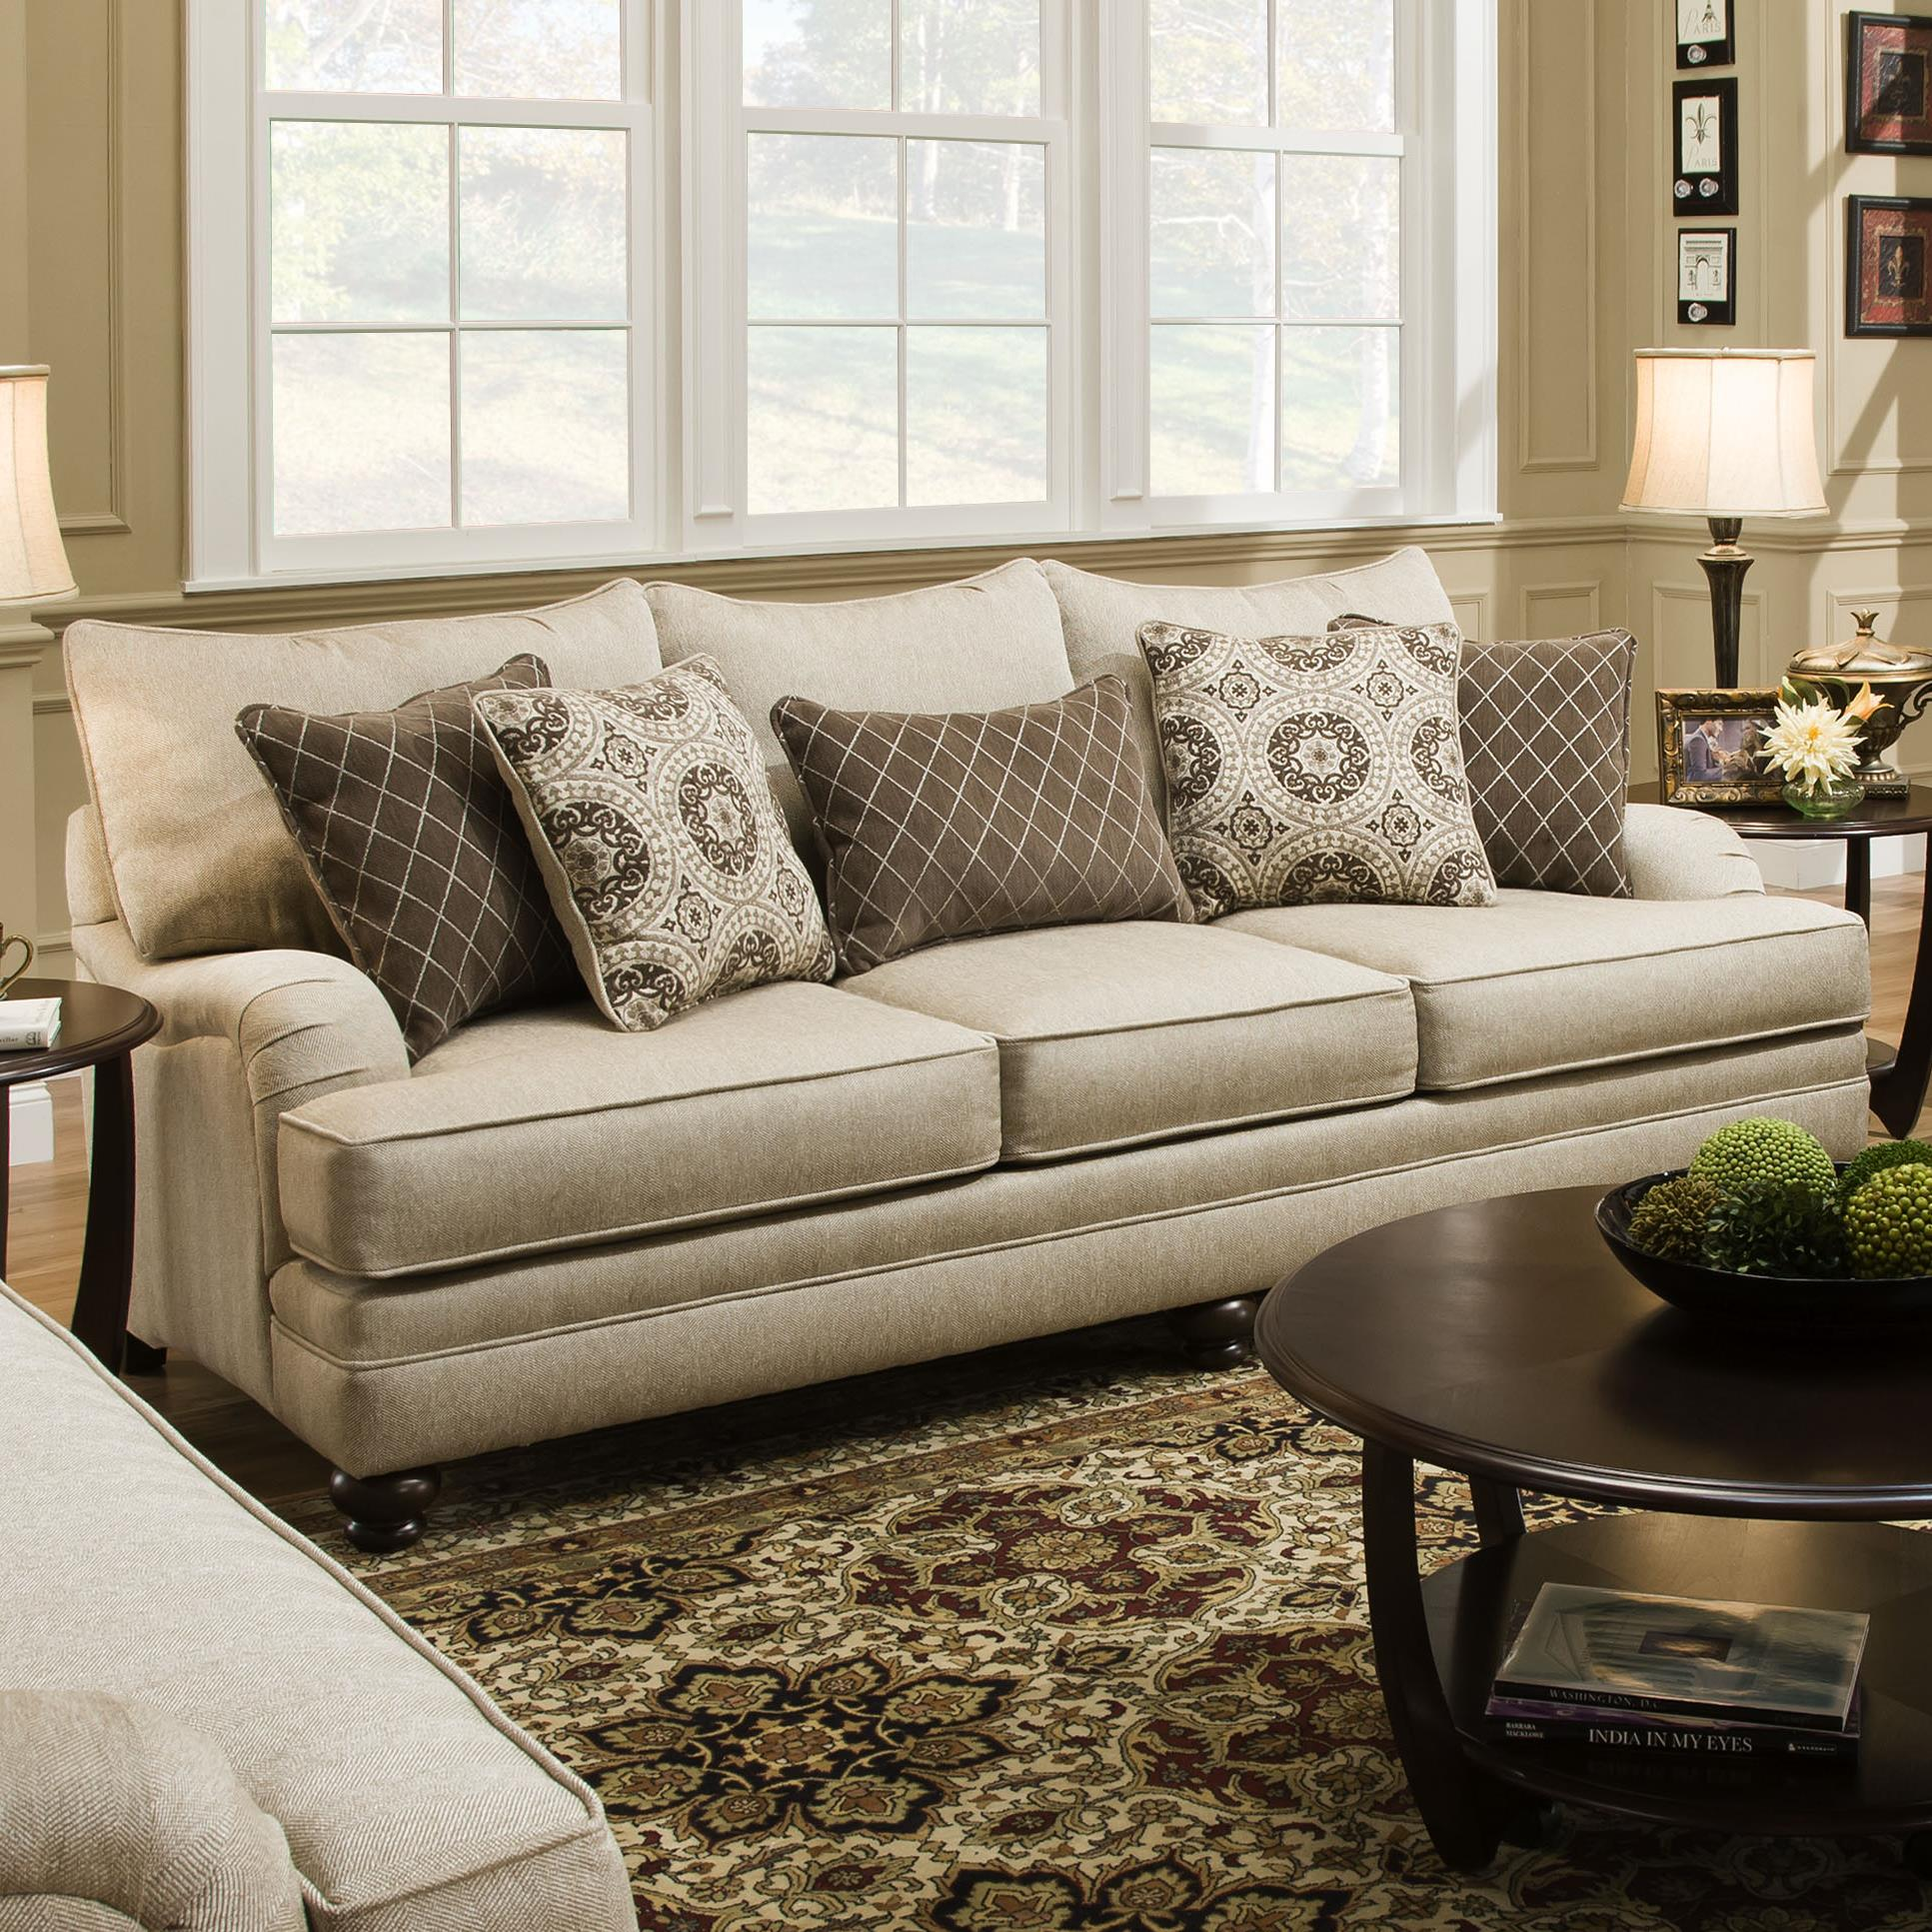 power living sectional reilly room furniture grand iteminformation corinthian cupboard